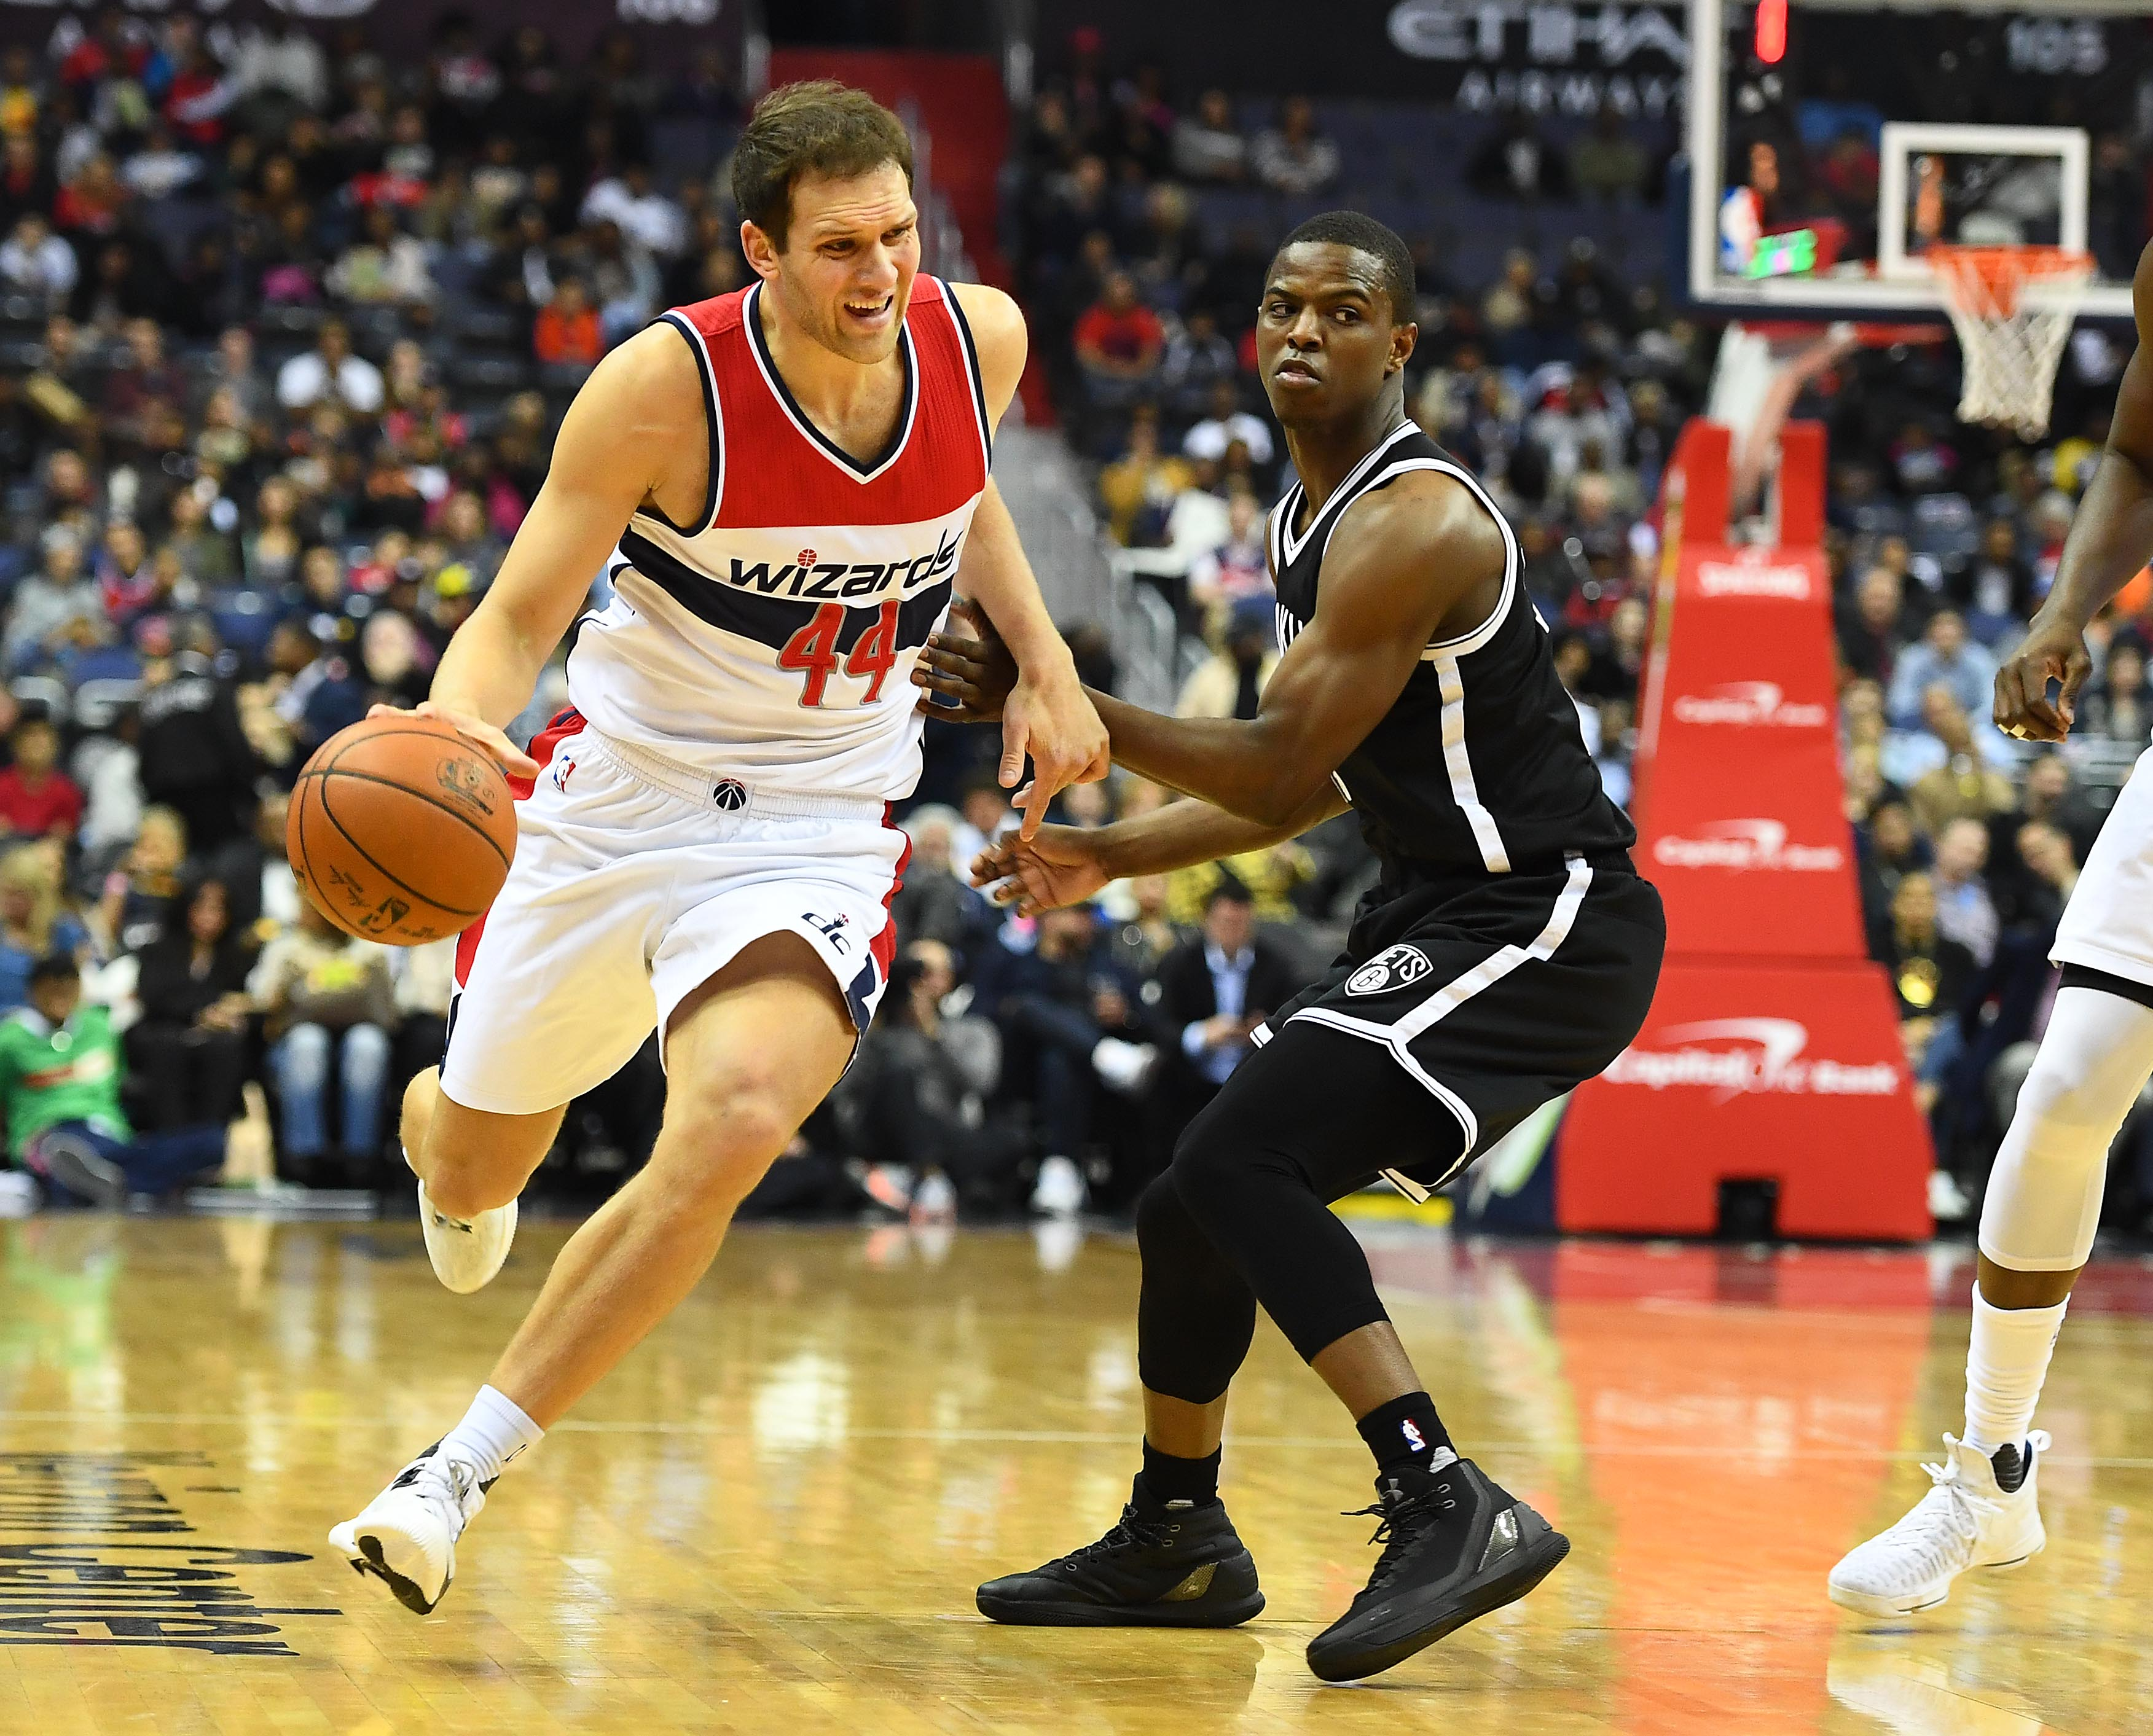 9968156-nba-brooklyn-nets-at-washington-wizards